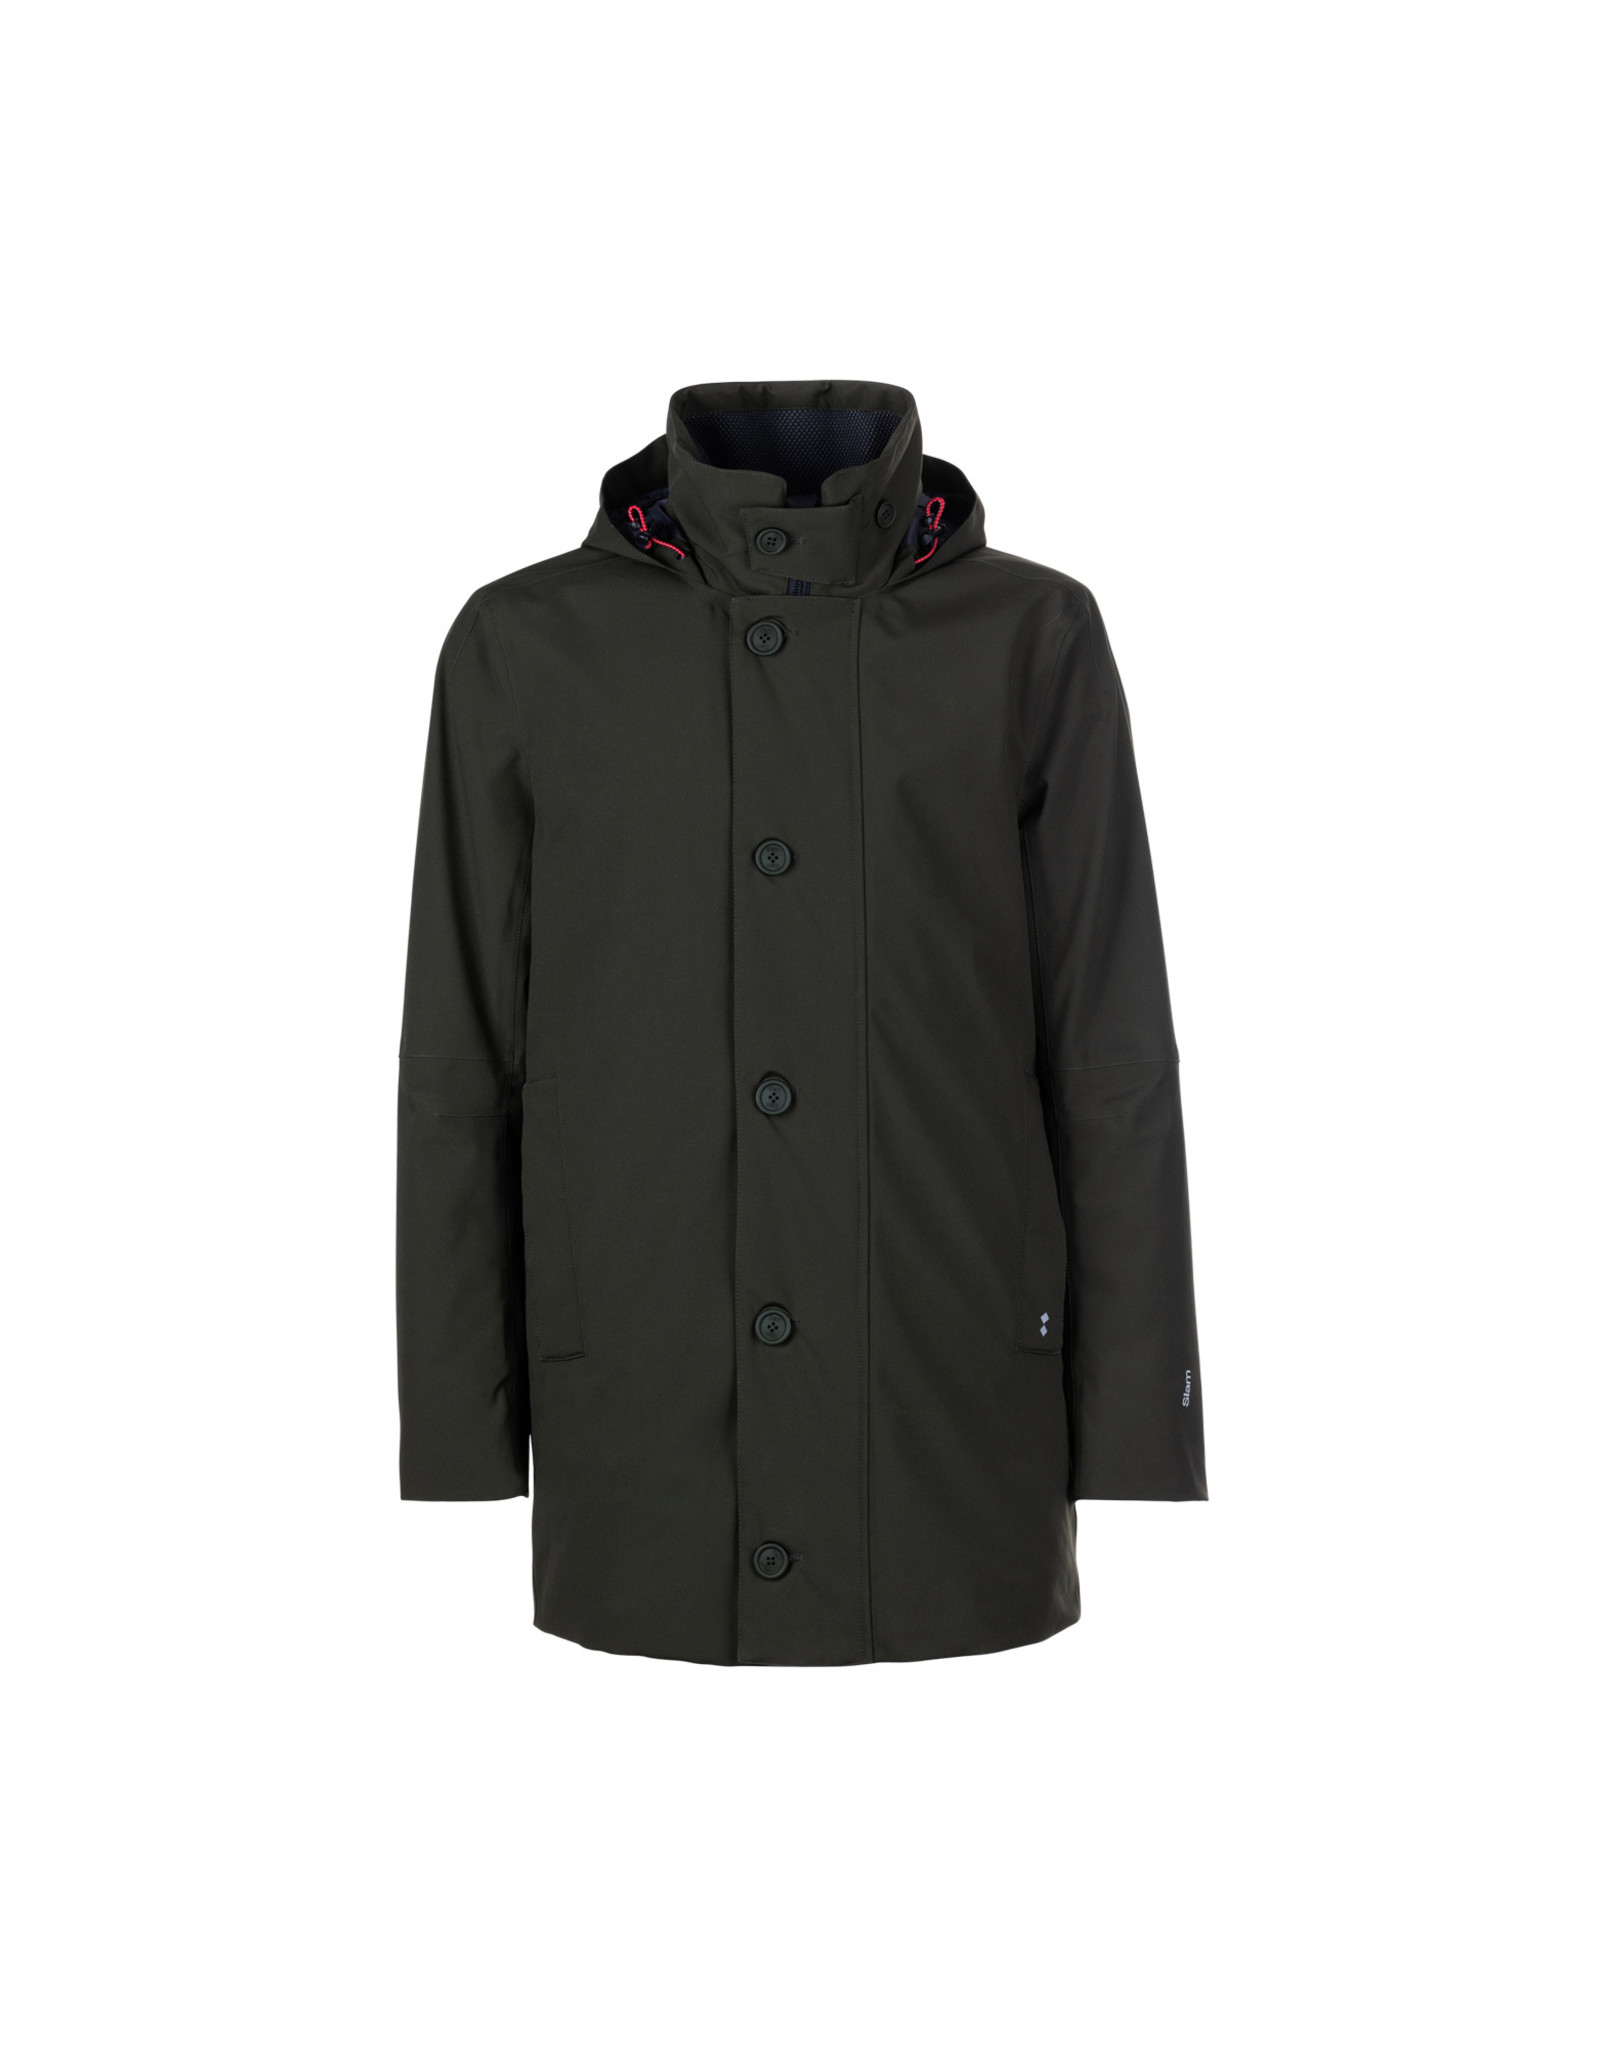 Slam Slam Coat New Gardner - Sea Green ( A36 )